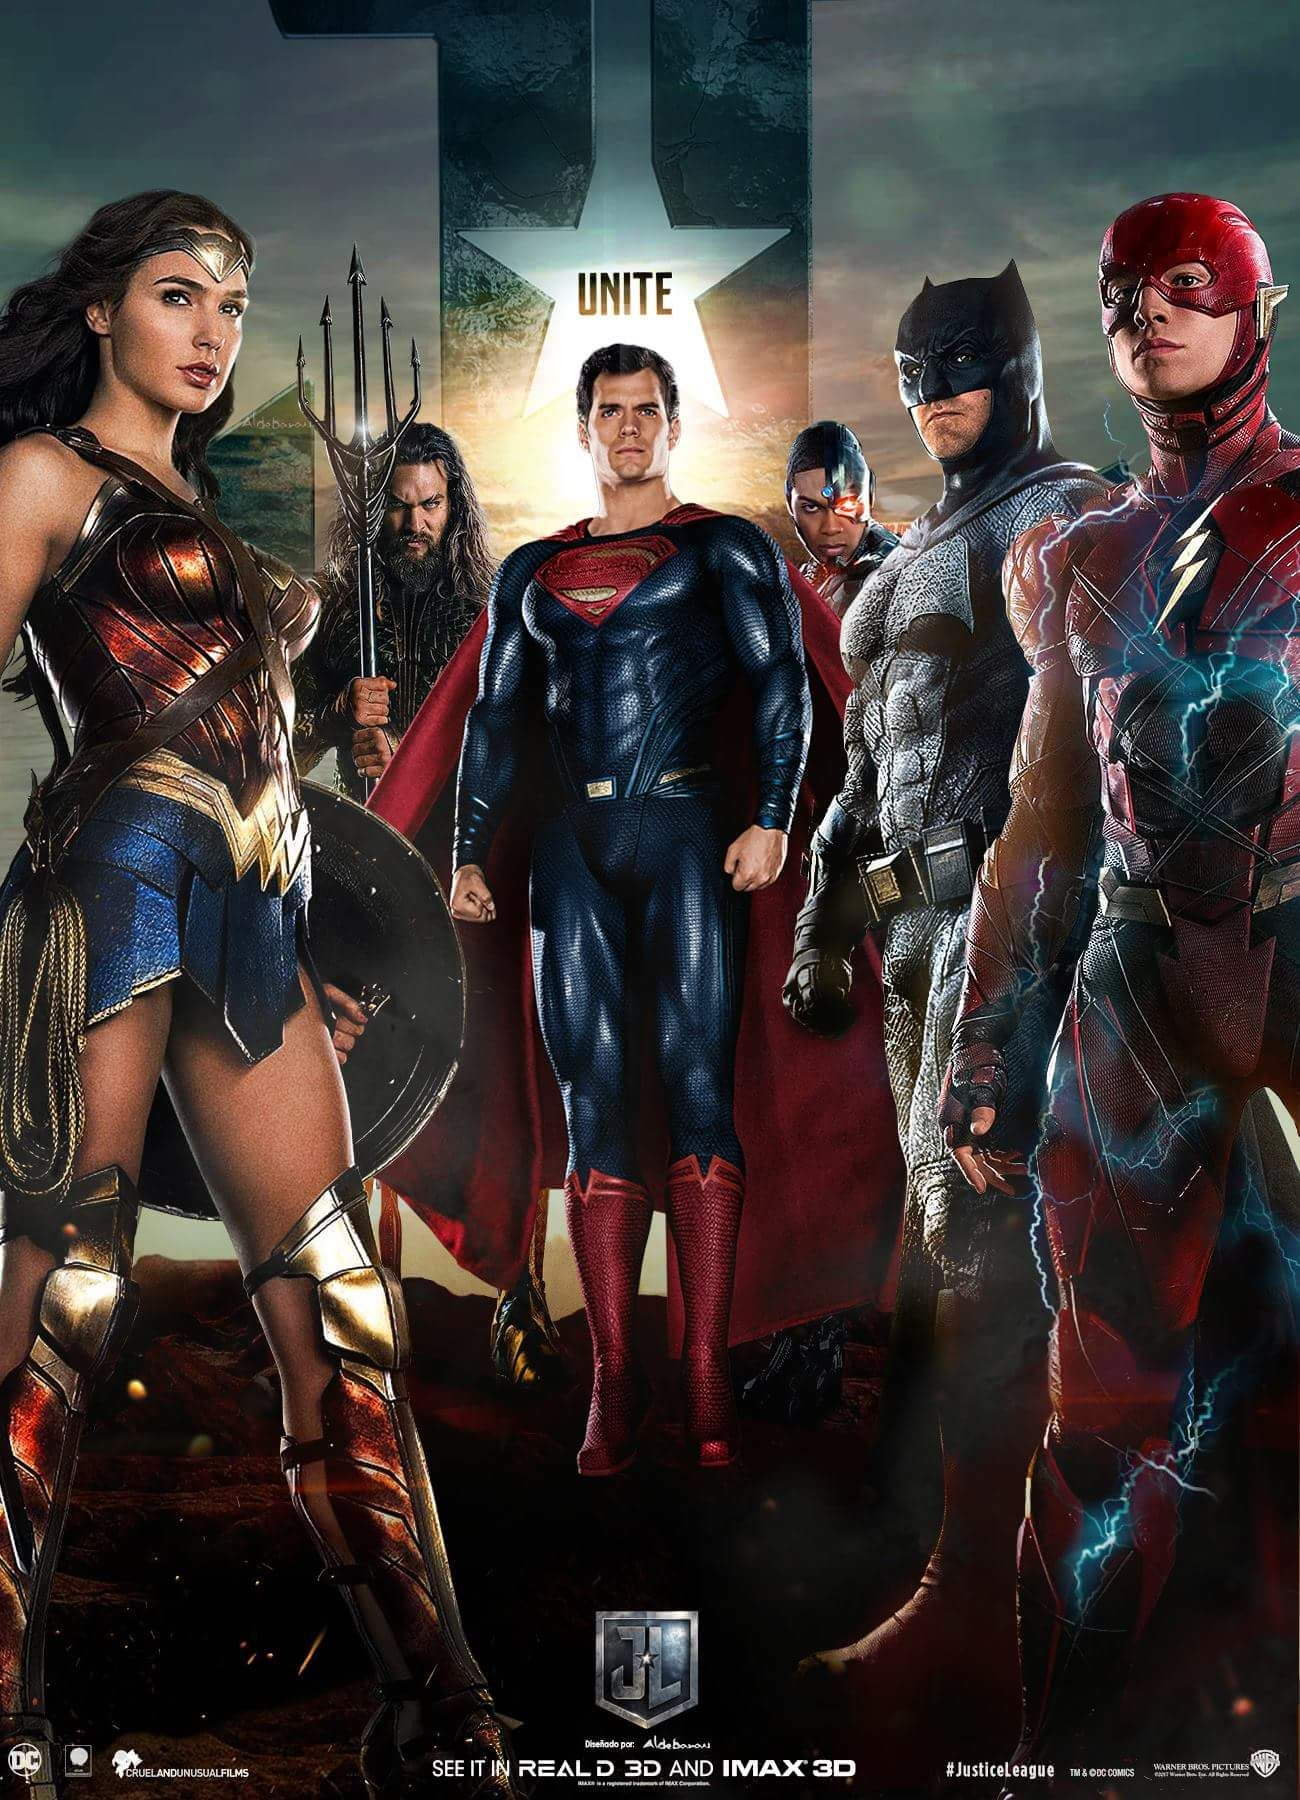 Justice League Movie Wallpapers Images On Wallpaper 1080p Hd